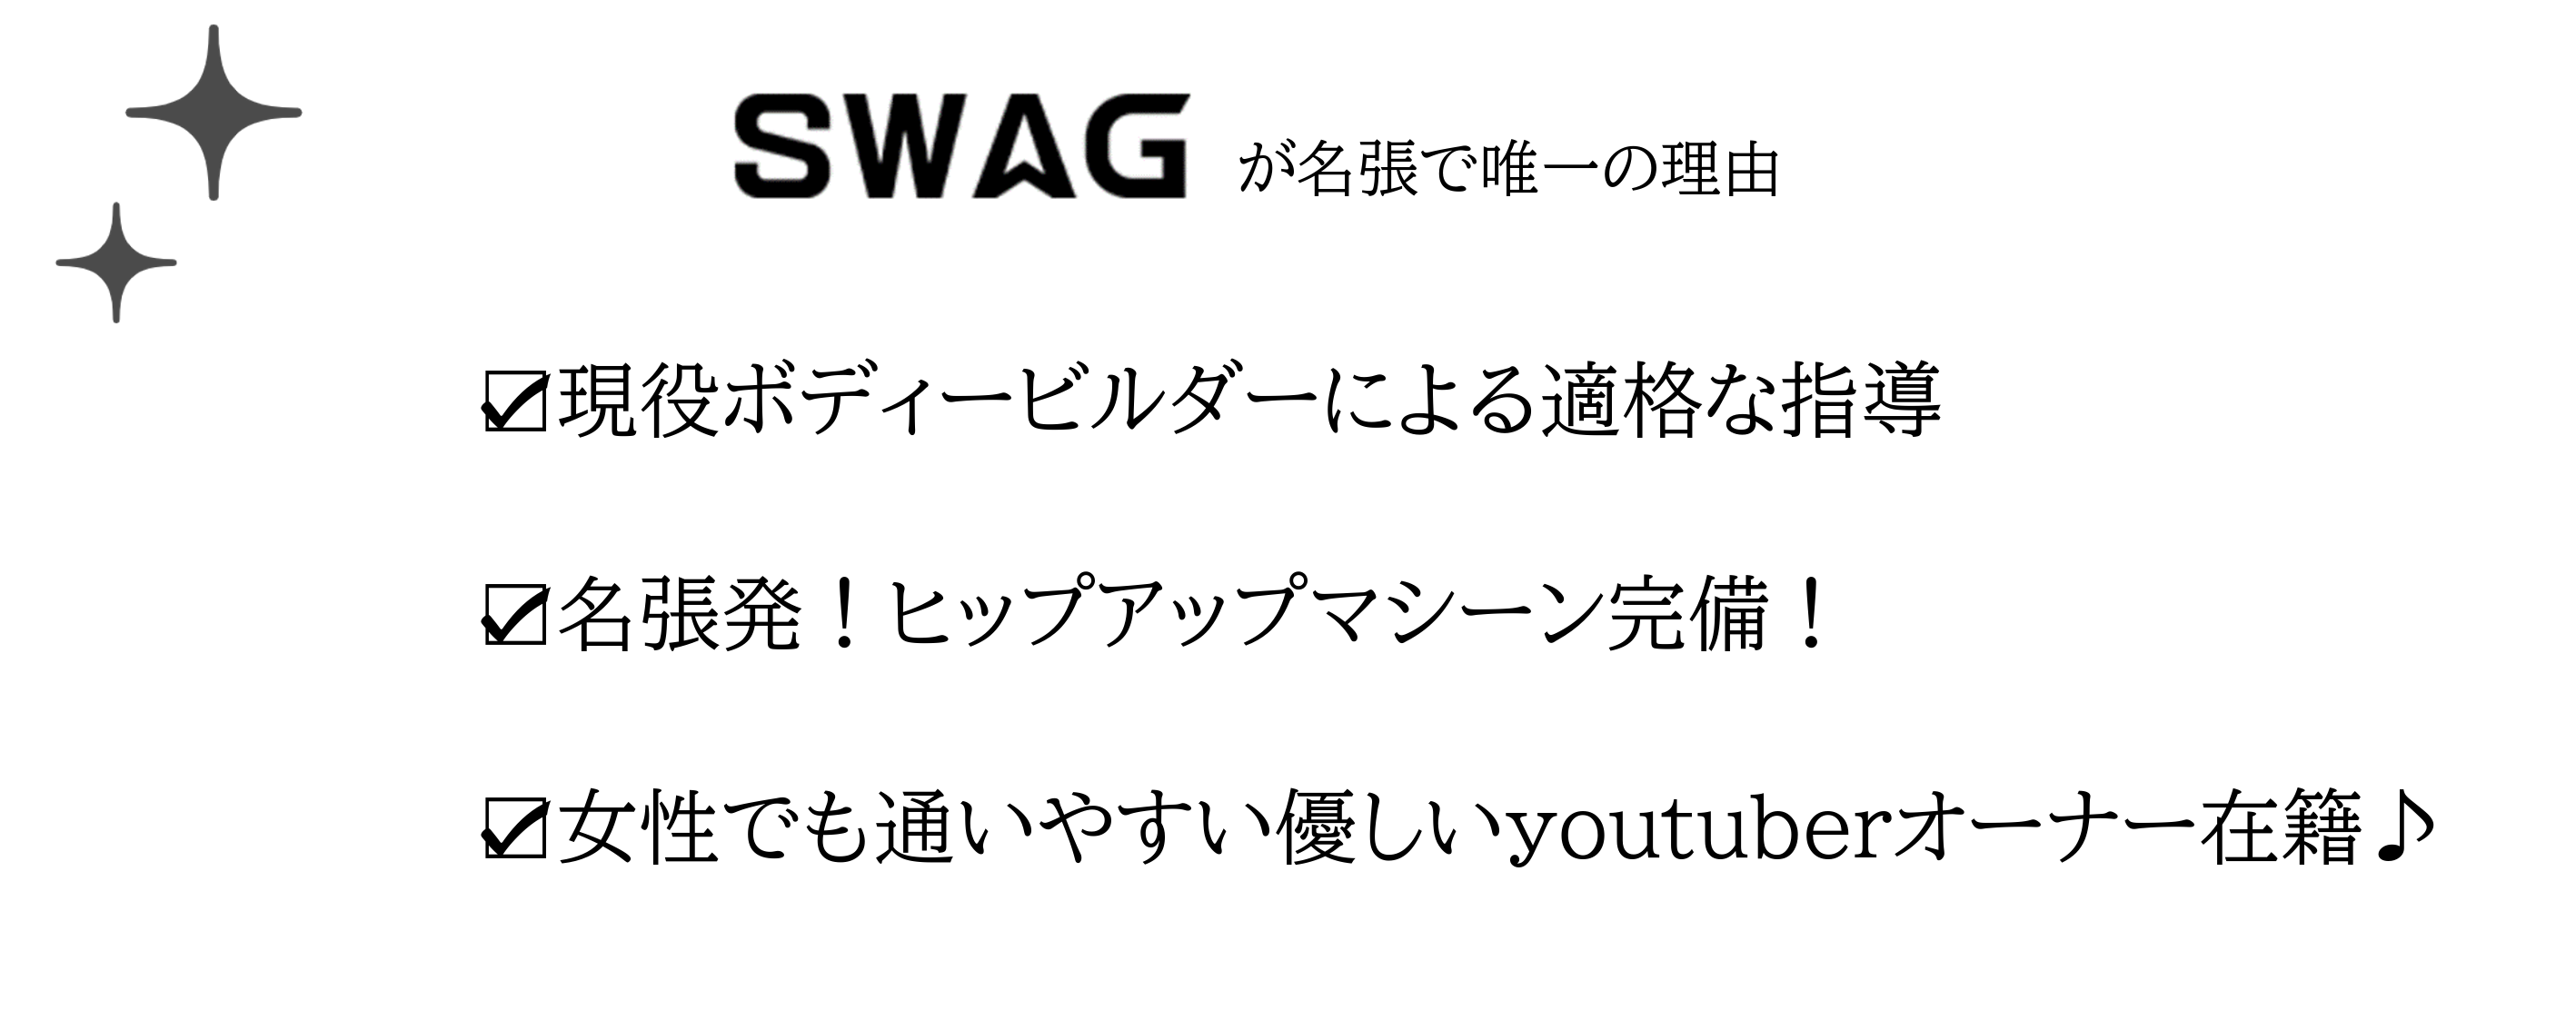 SWAG3